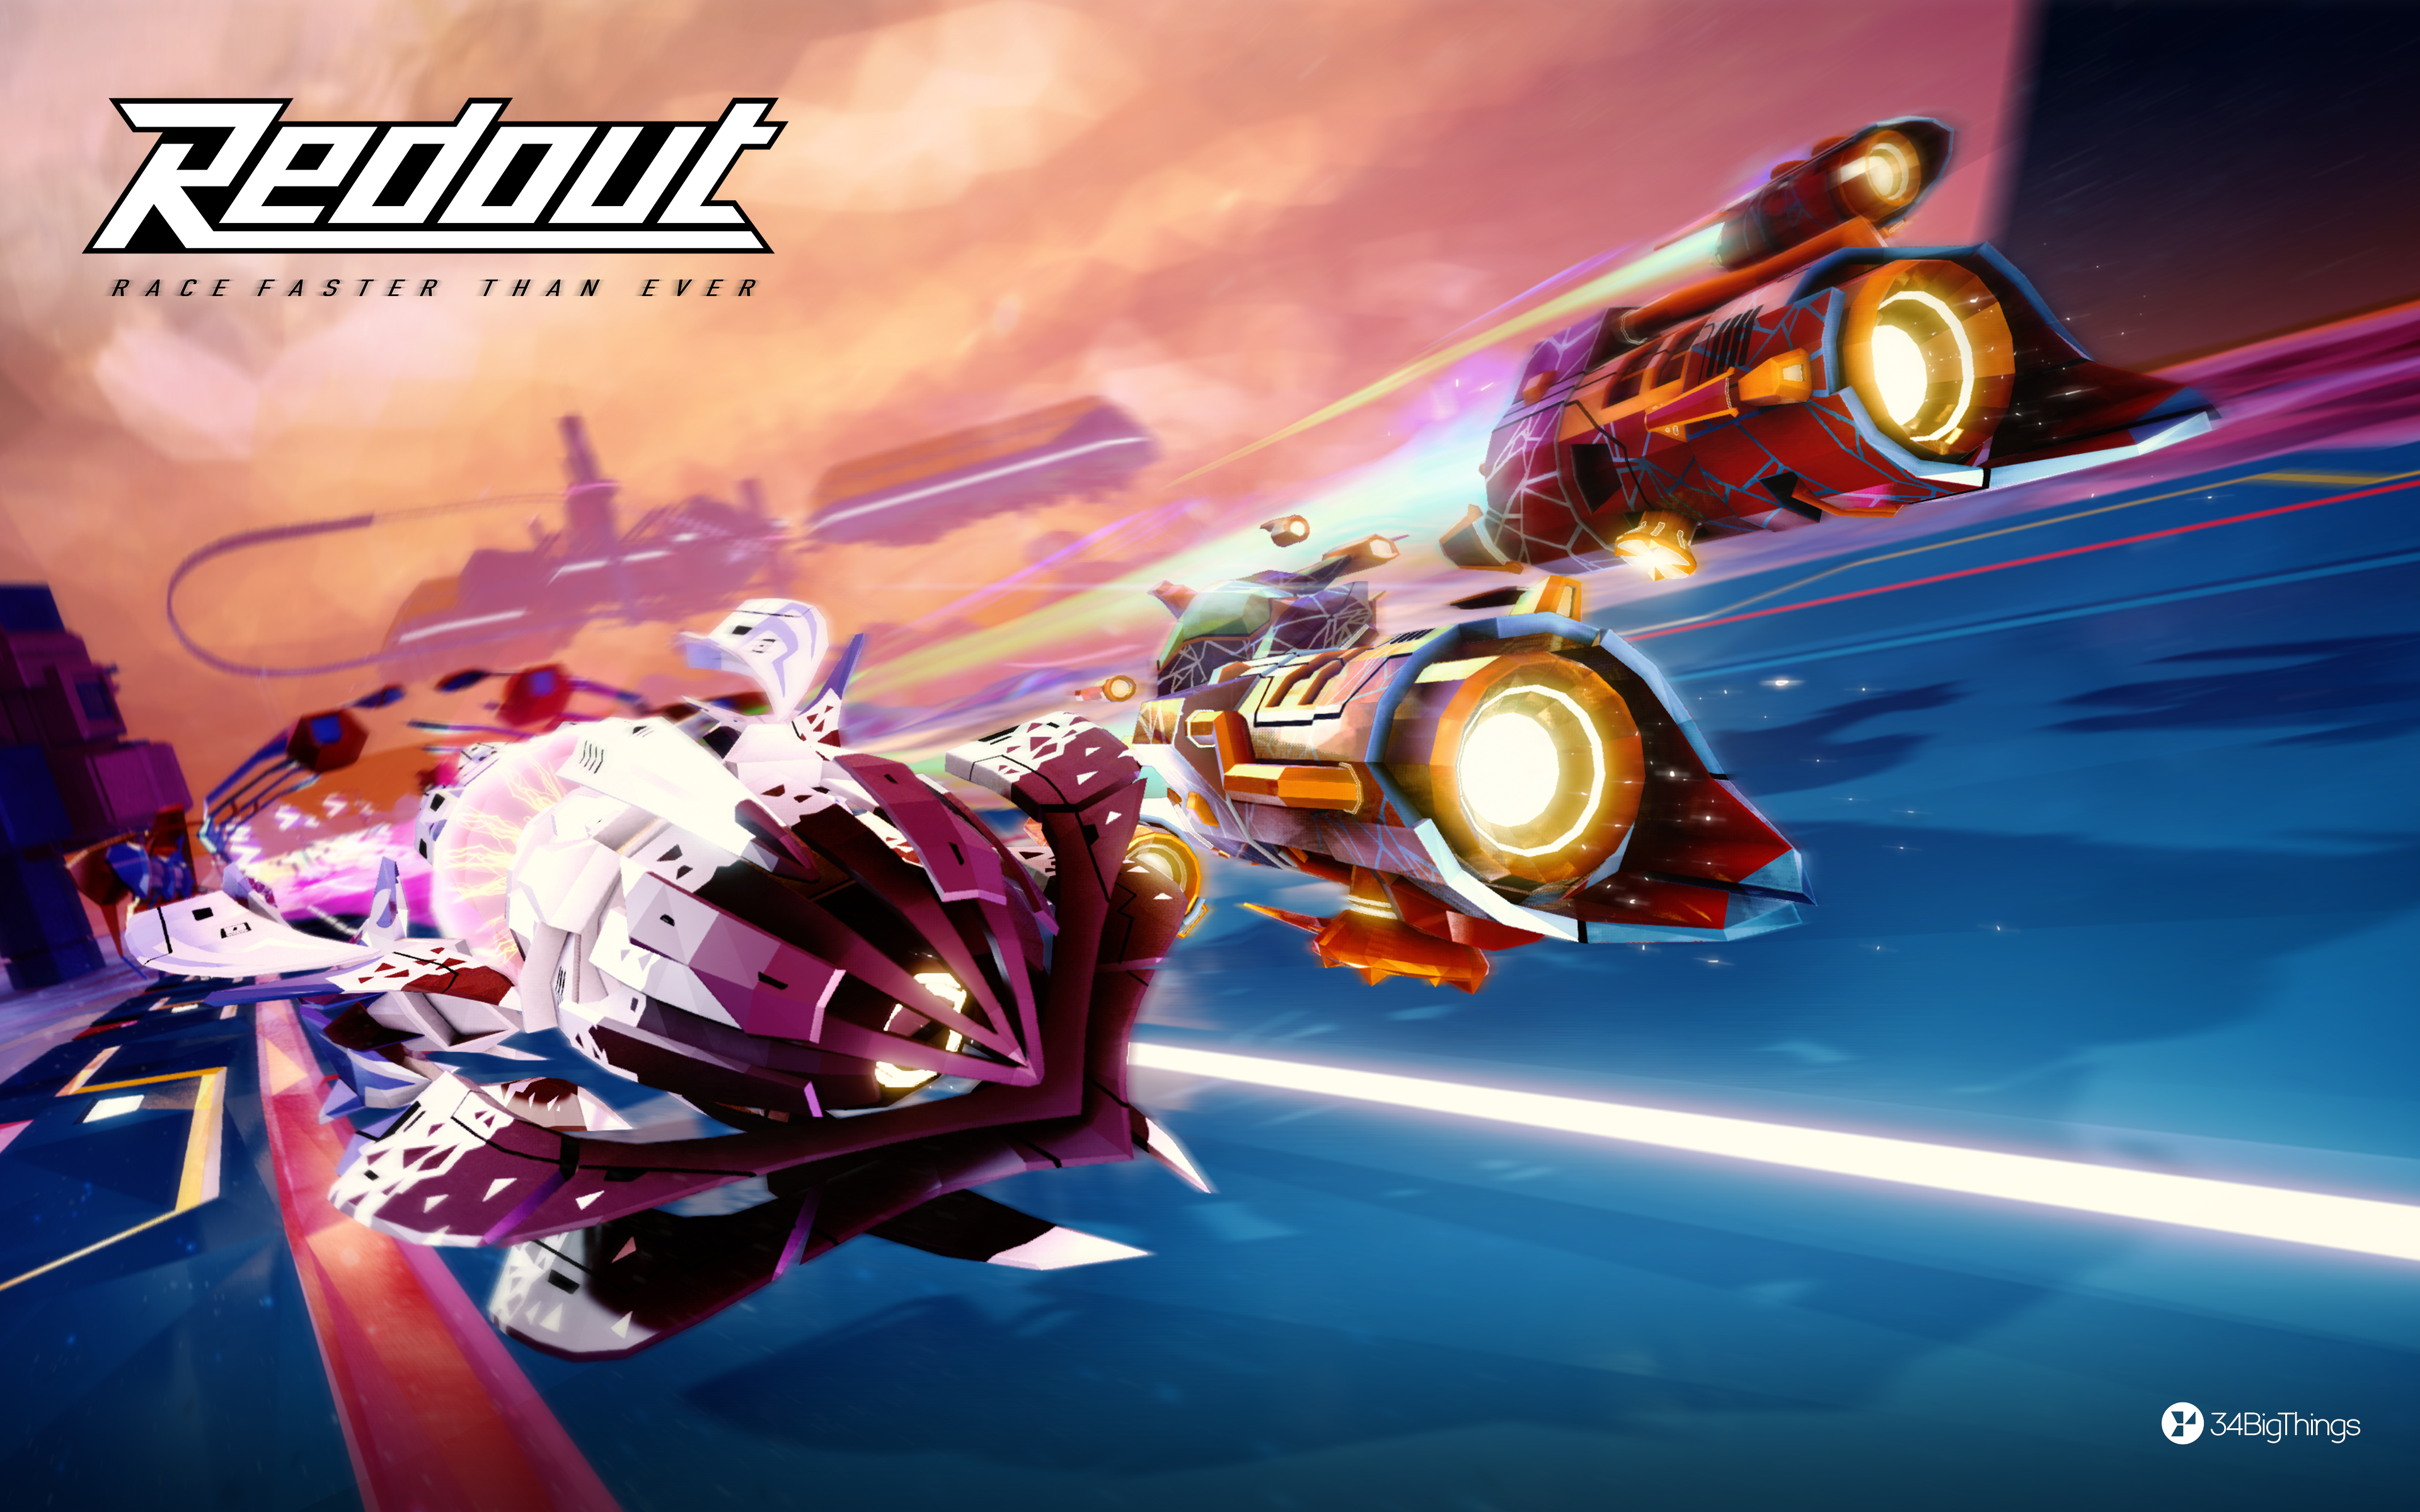 redout wallpapers 34bigthings srl